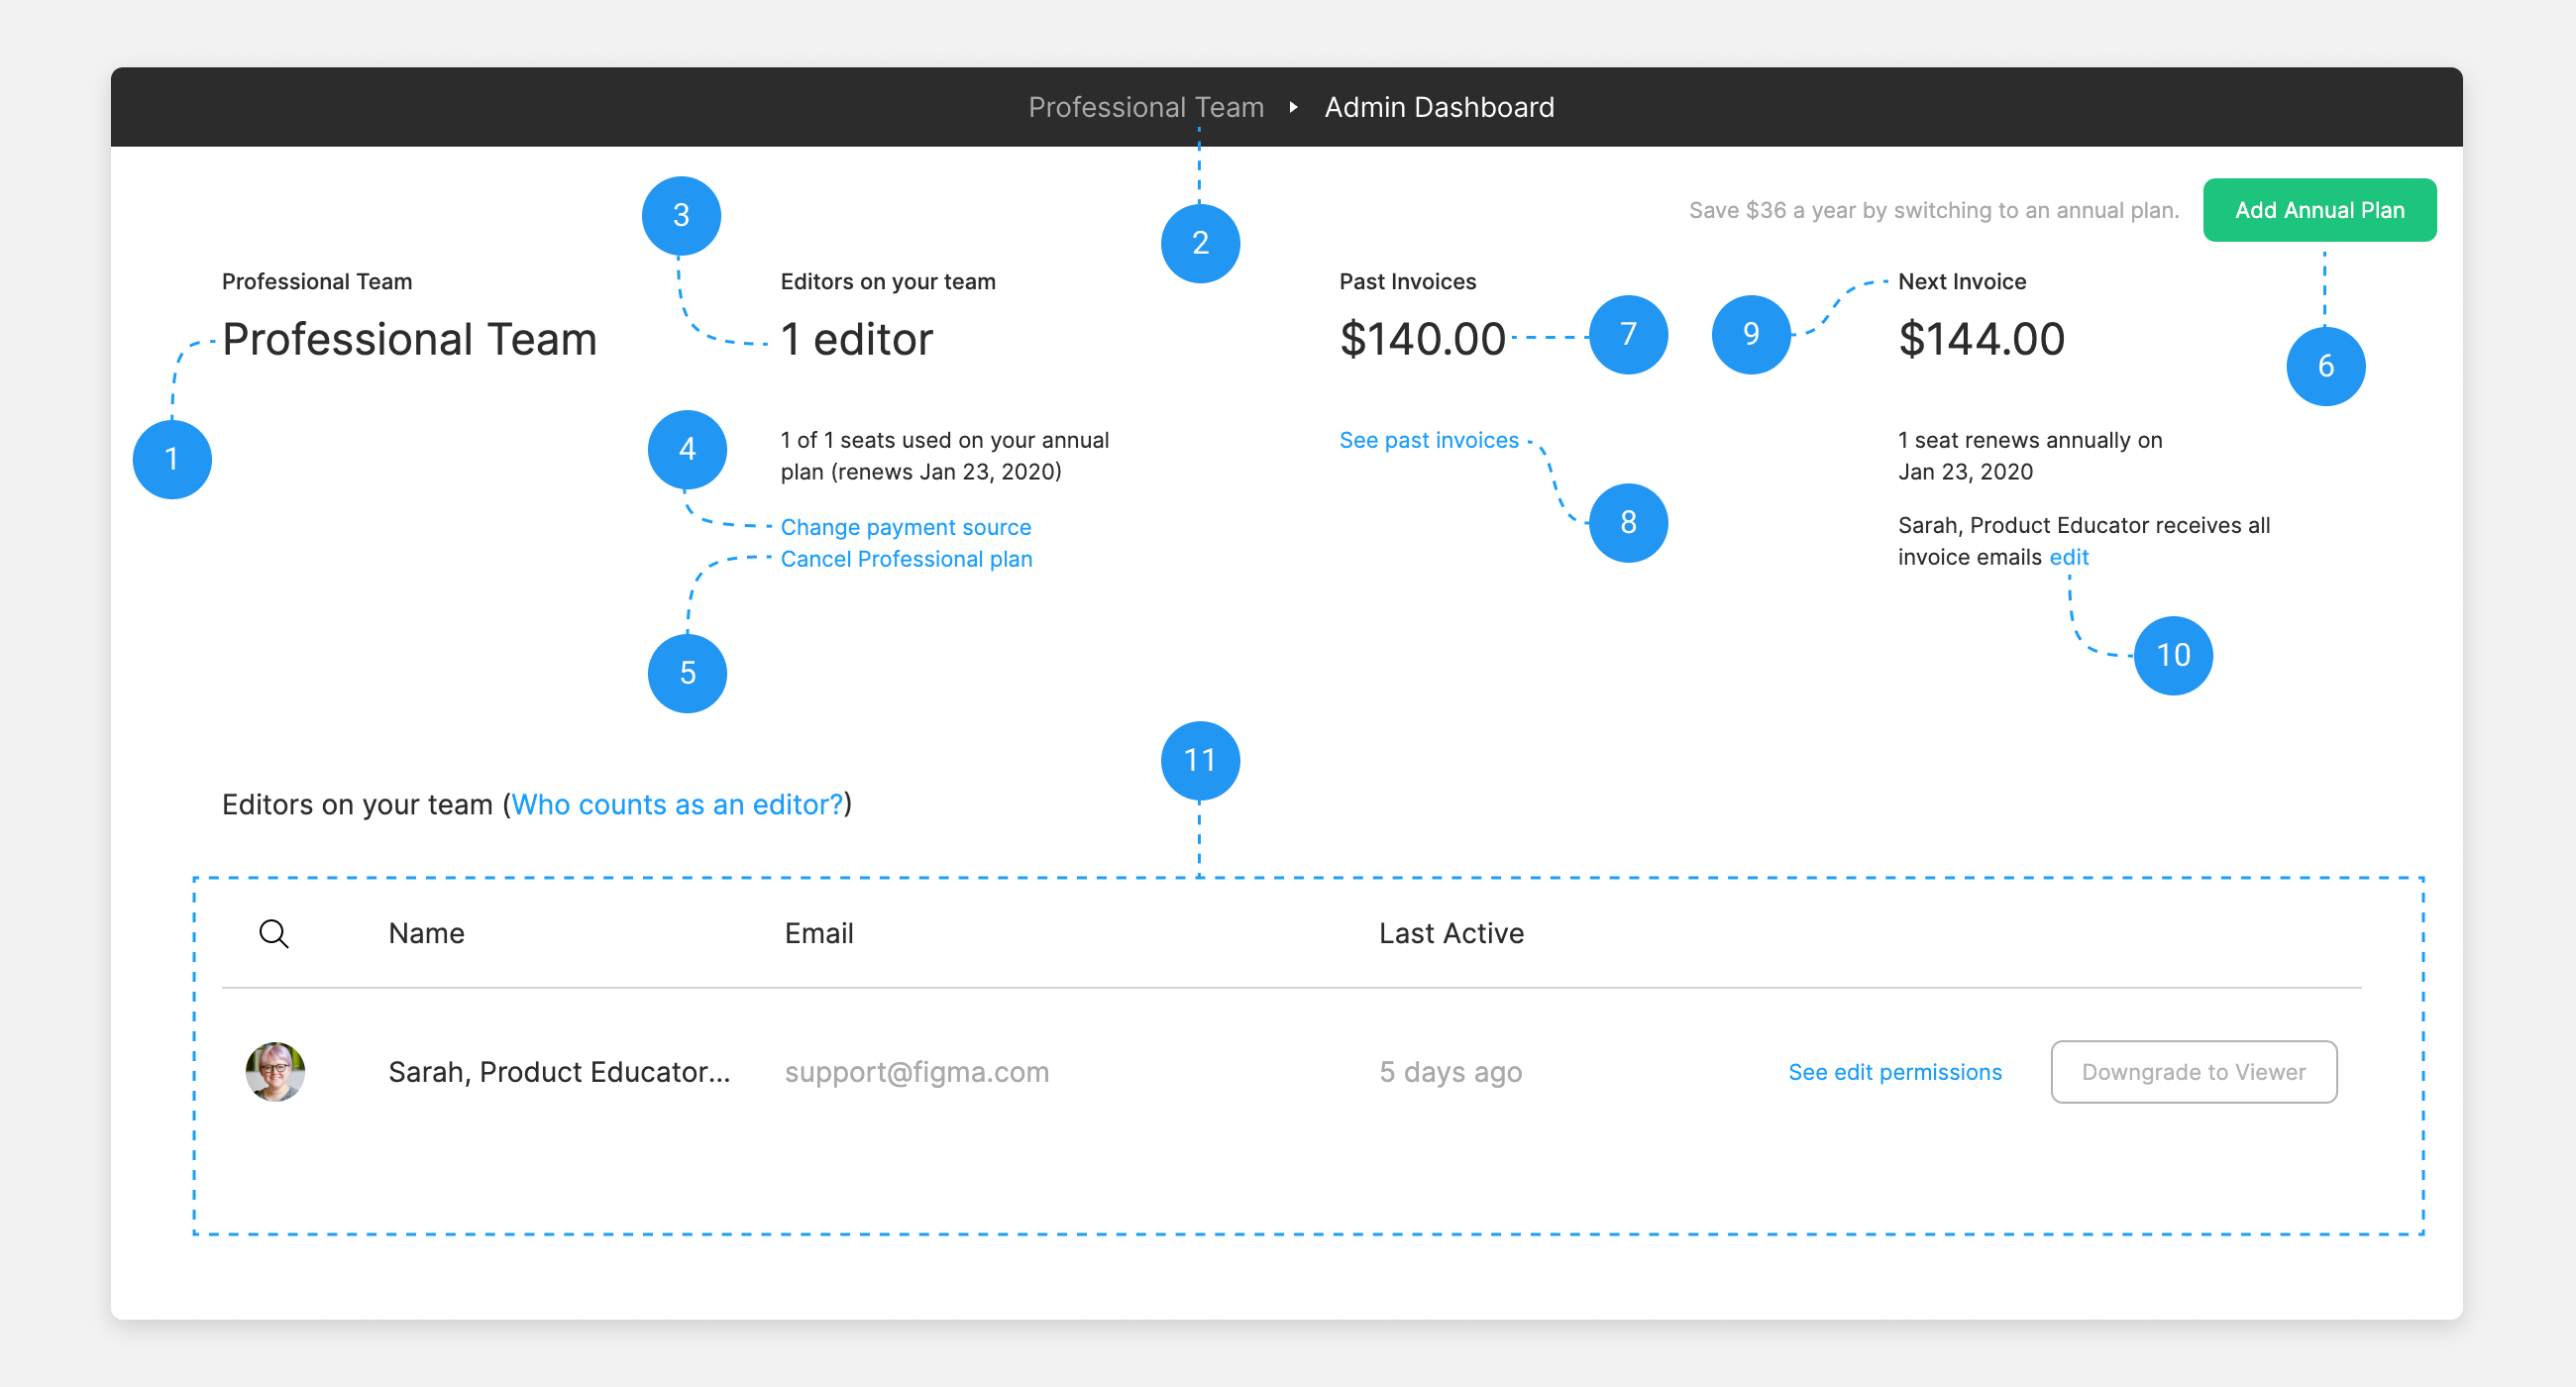 The Admin Dashboard for a team on the Professional plan